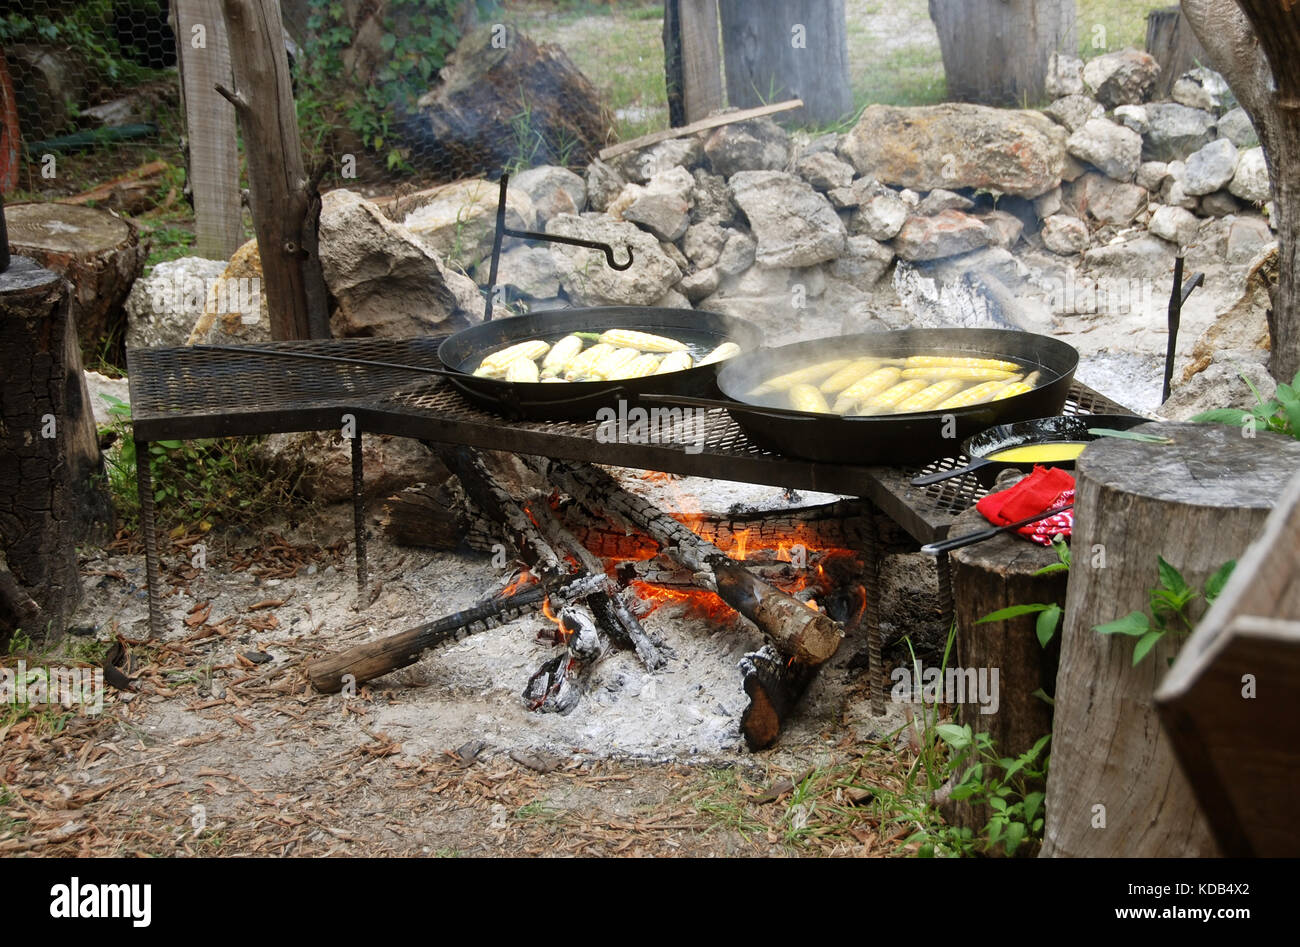 Cooking corn on a campfire  in the wilderness - Stock Image